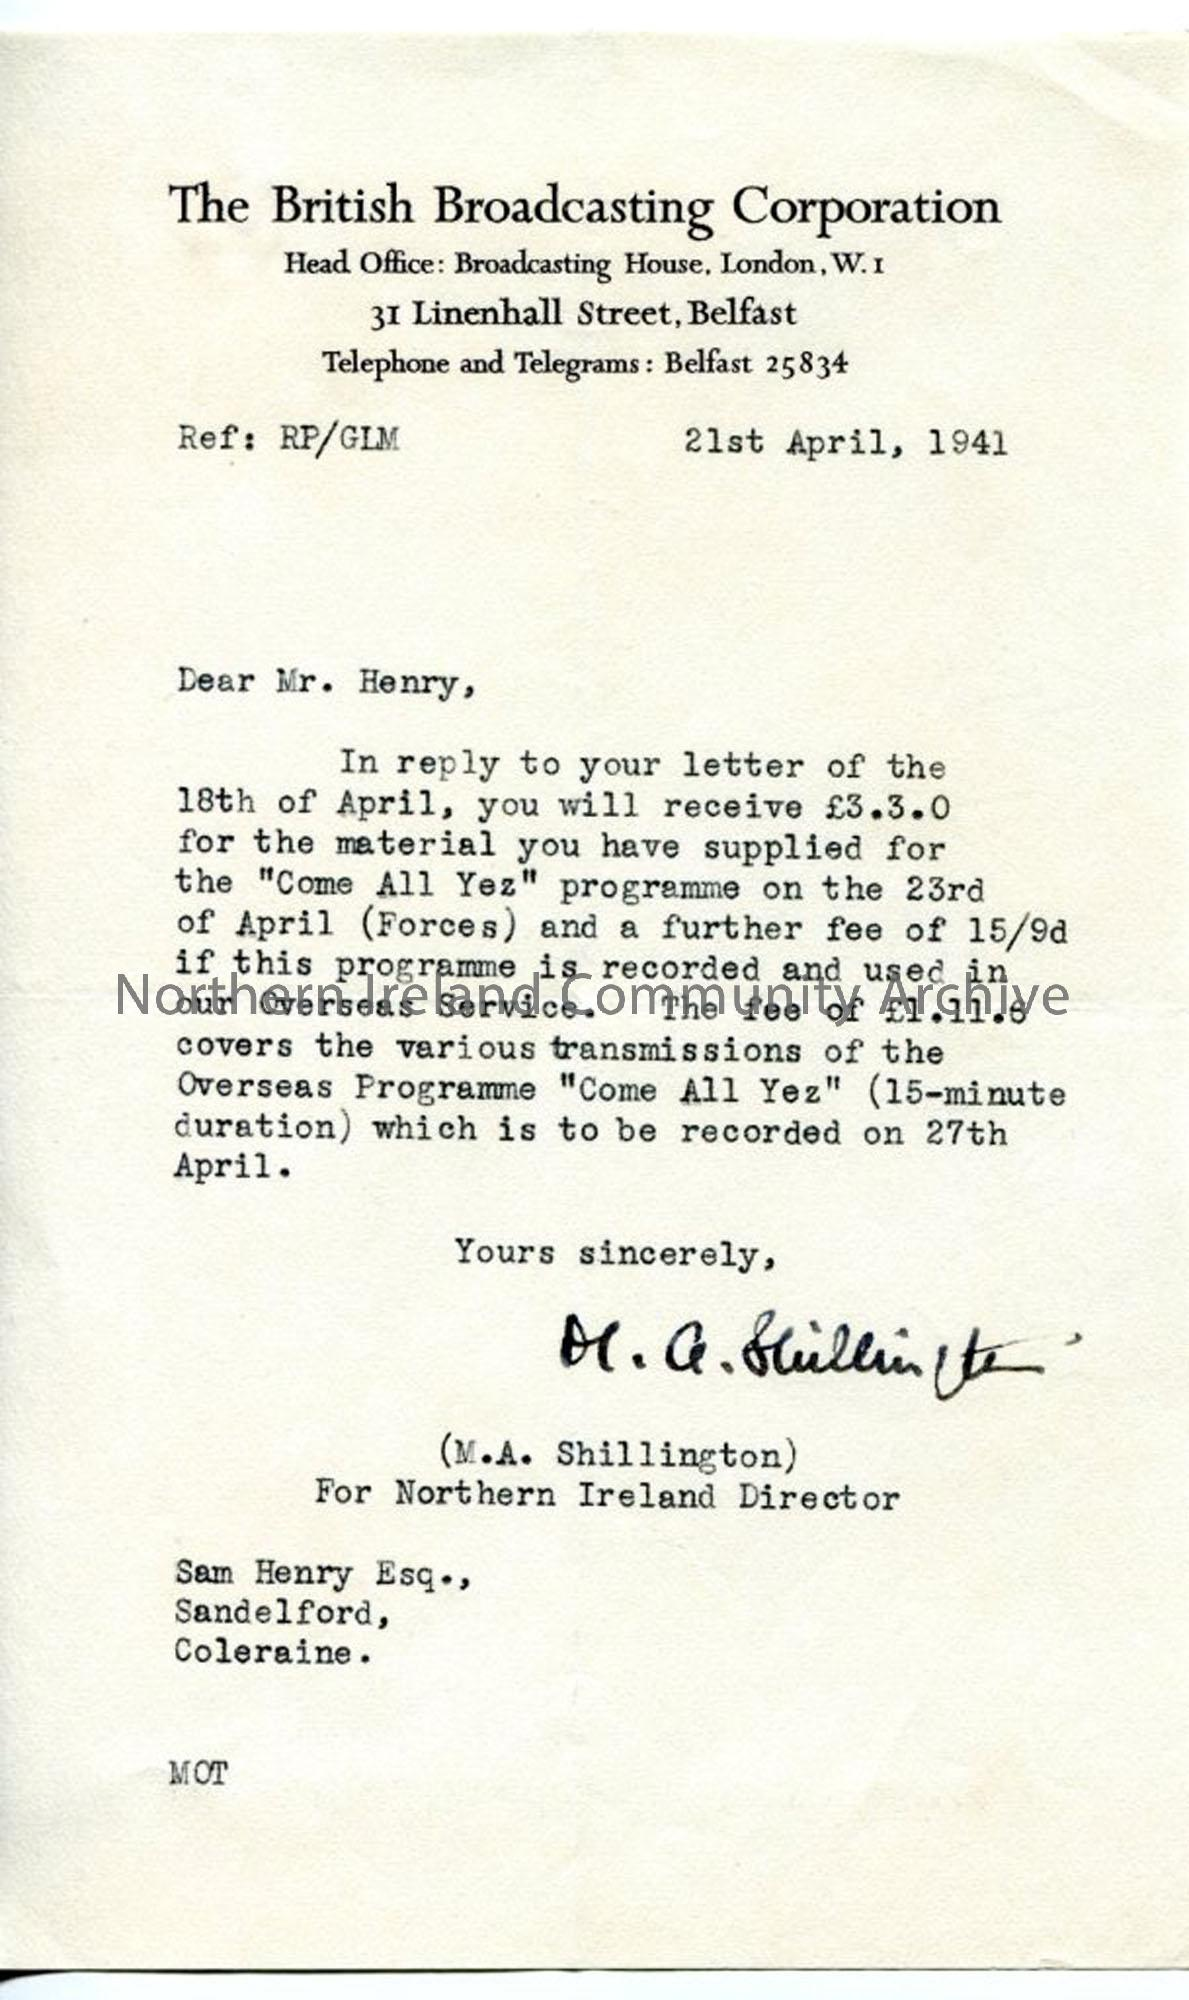 Letter from M A Shillington of the BBC, dated 21.4.1941